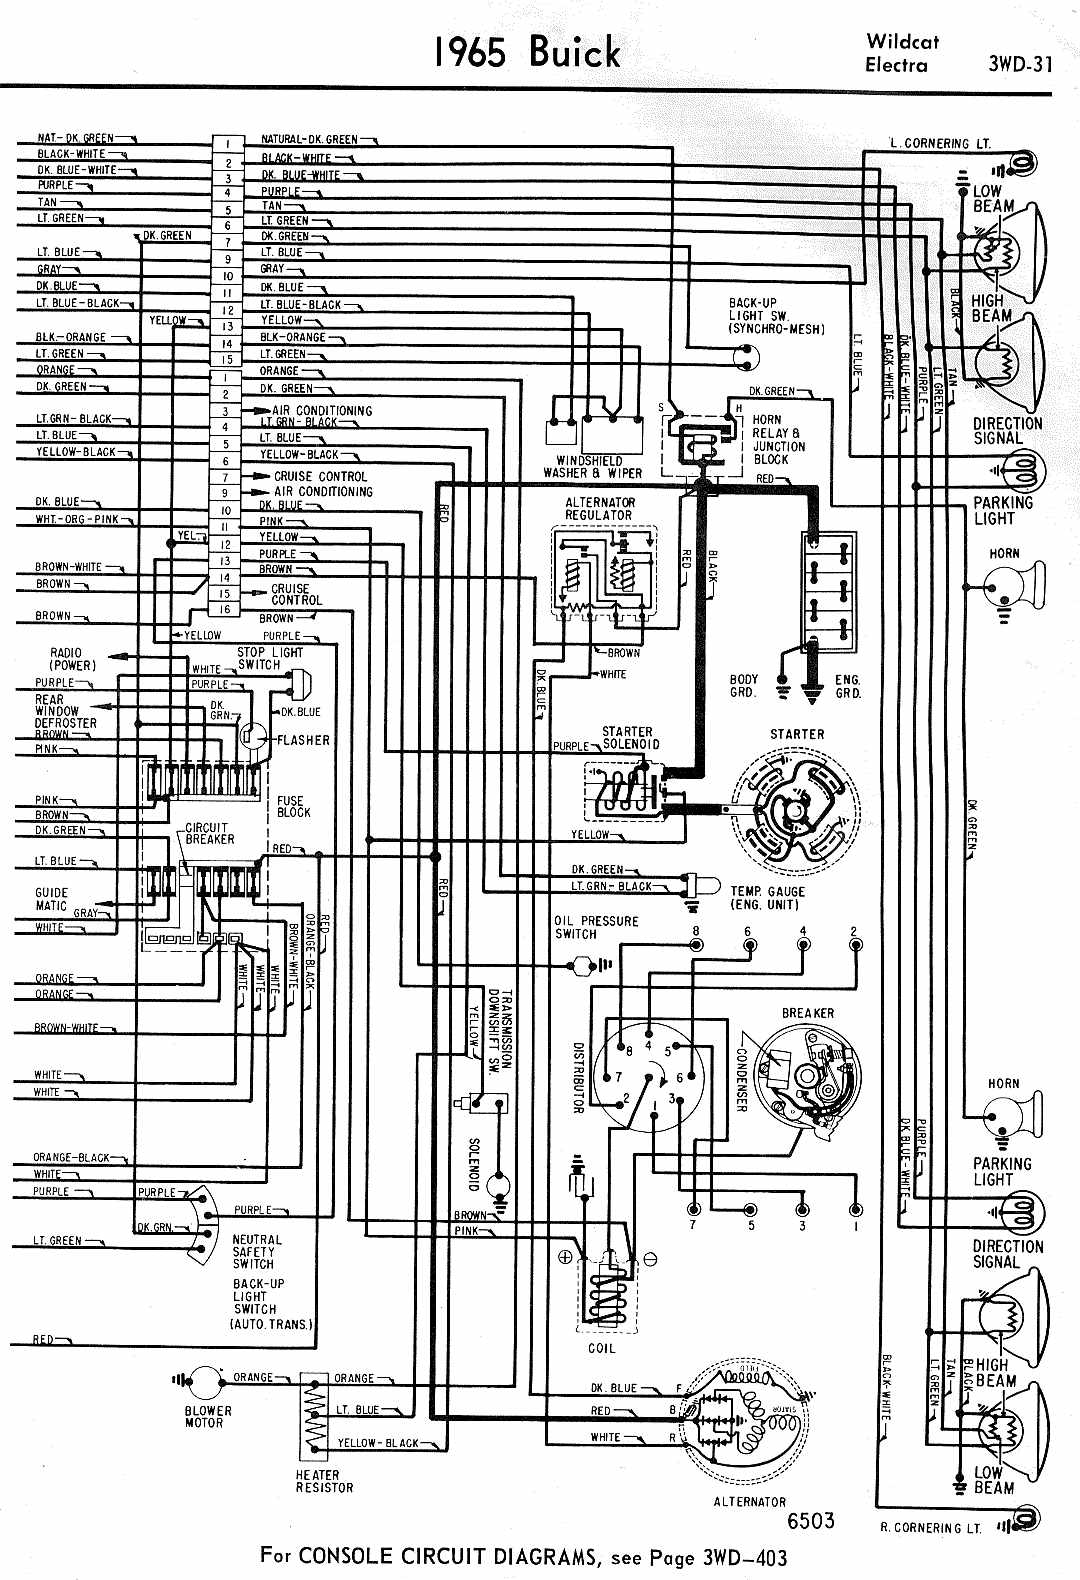 1940 Buick Wiring Diagram - Wiring Diagram